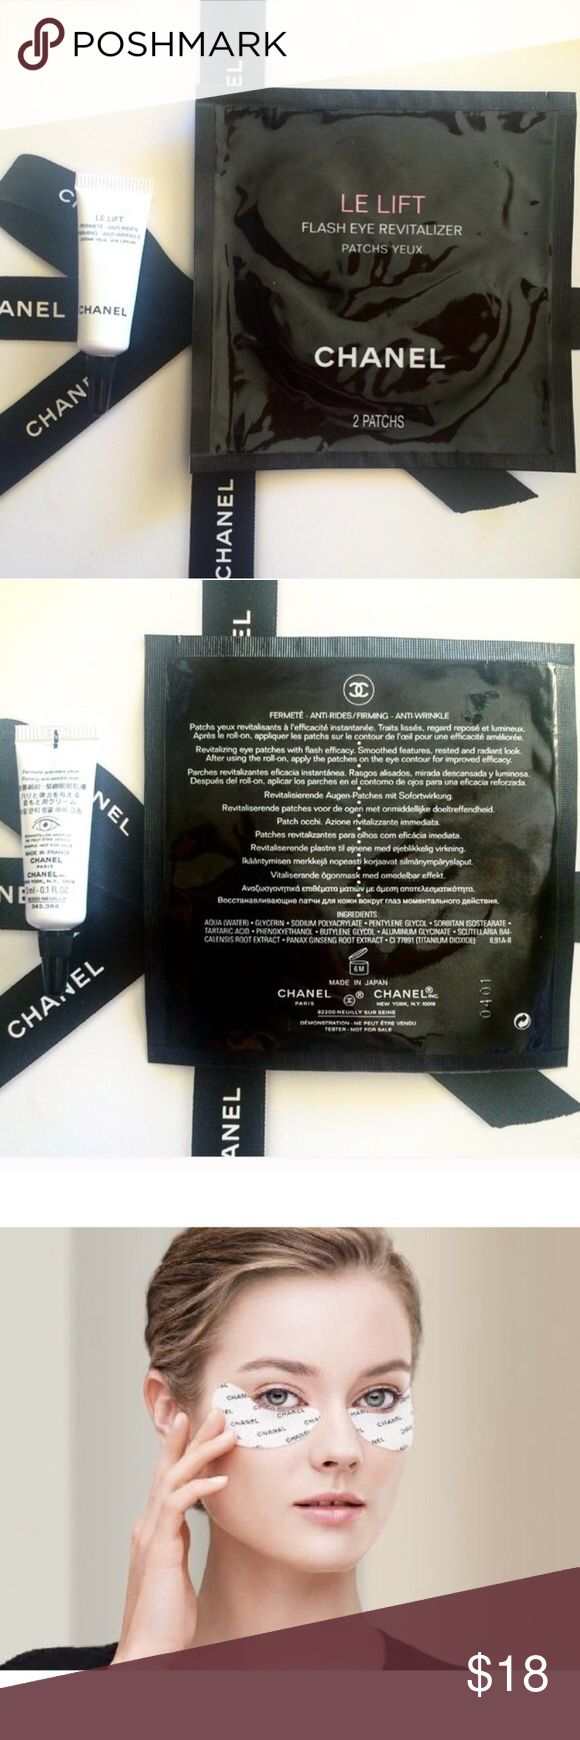 CHANEL eye patch Brand new and authentic CHANEL eye patches and eye cream sample. A two-step eye care system that starts with an intense roll-on serum followed by hydrogel patches for immediate revitalization and radiance. Actual Product includes ten sets of two hydrogel patches for 135$ before tax. Eye cream full size is 105$ before tax. Price is for 1 per of eye patches and sample size eye cream. ❌No Trade❌ CHANEL Makeup